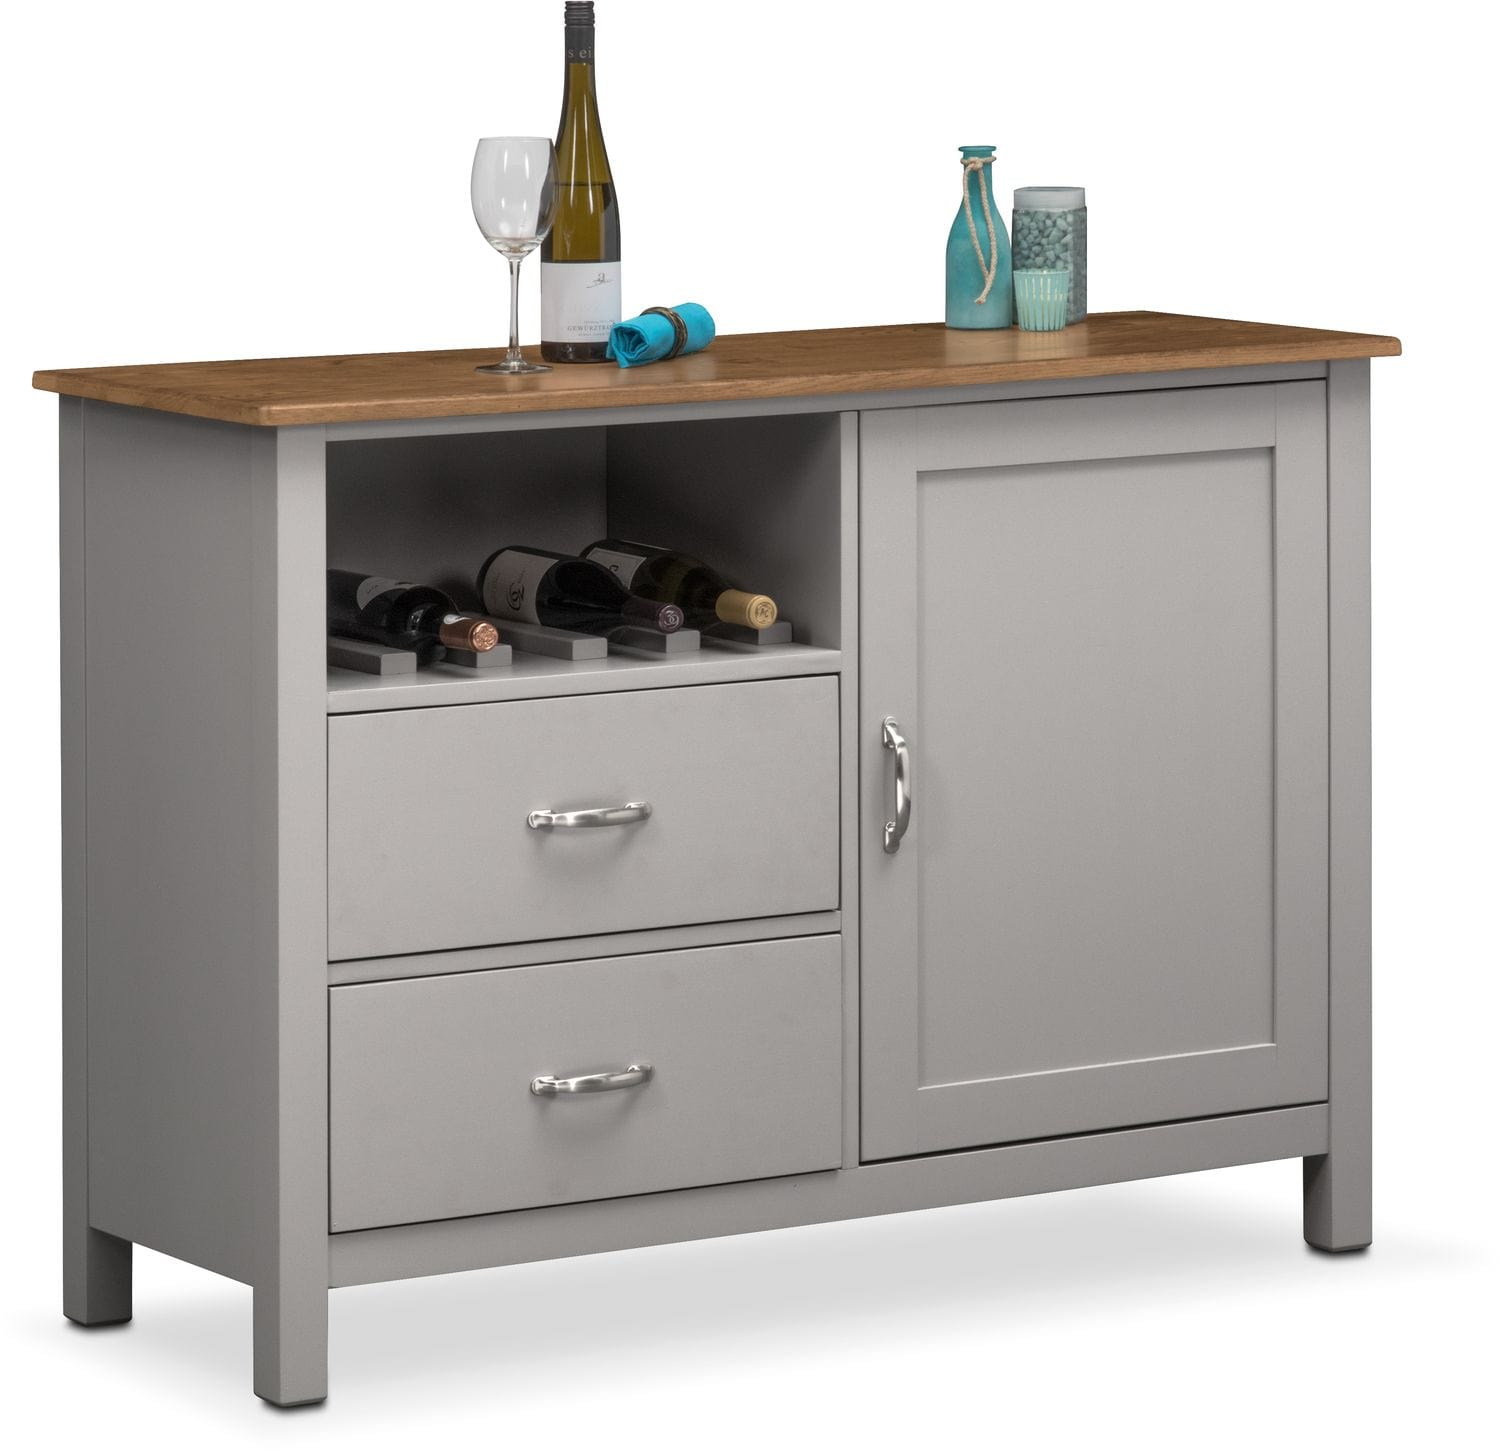 Dining Room Storage Furniture: Nantucket Sideboard - Oak And Gray